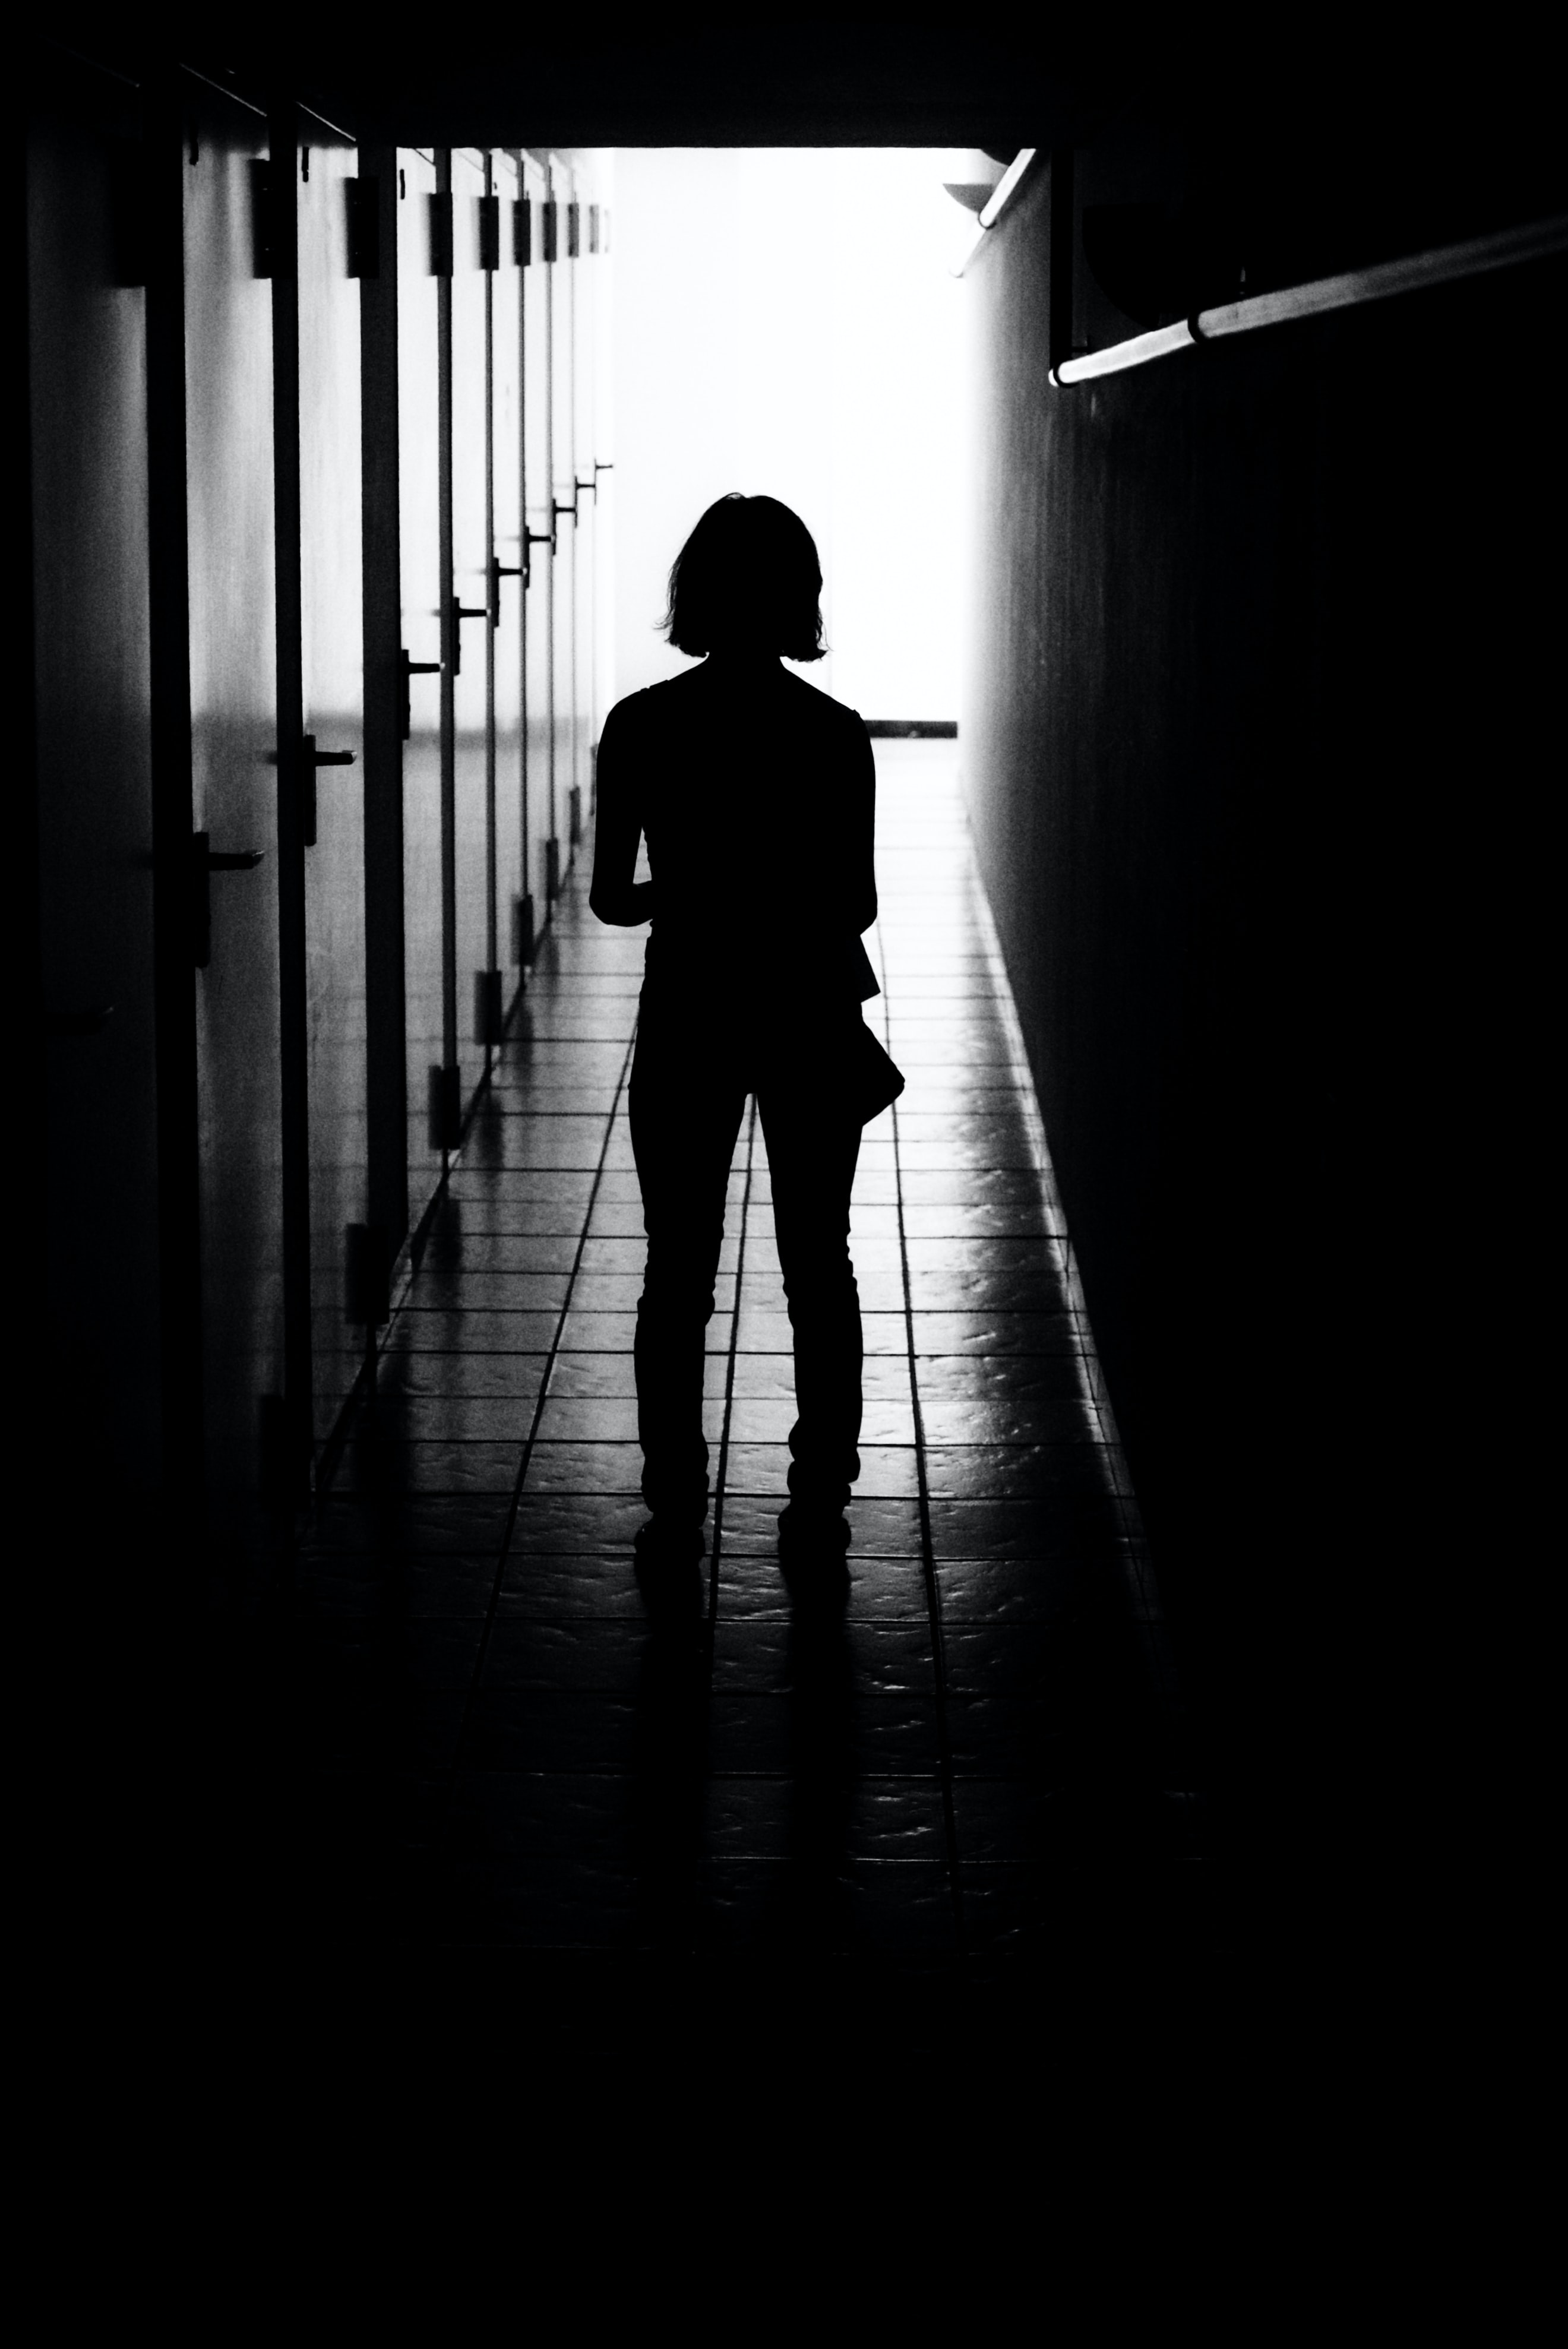 The silhouette of a female in a hallway, surrounded by darkness.